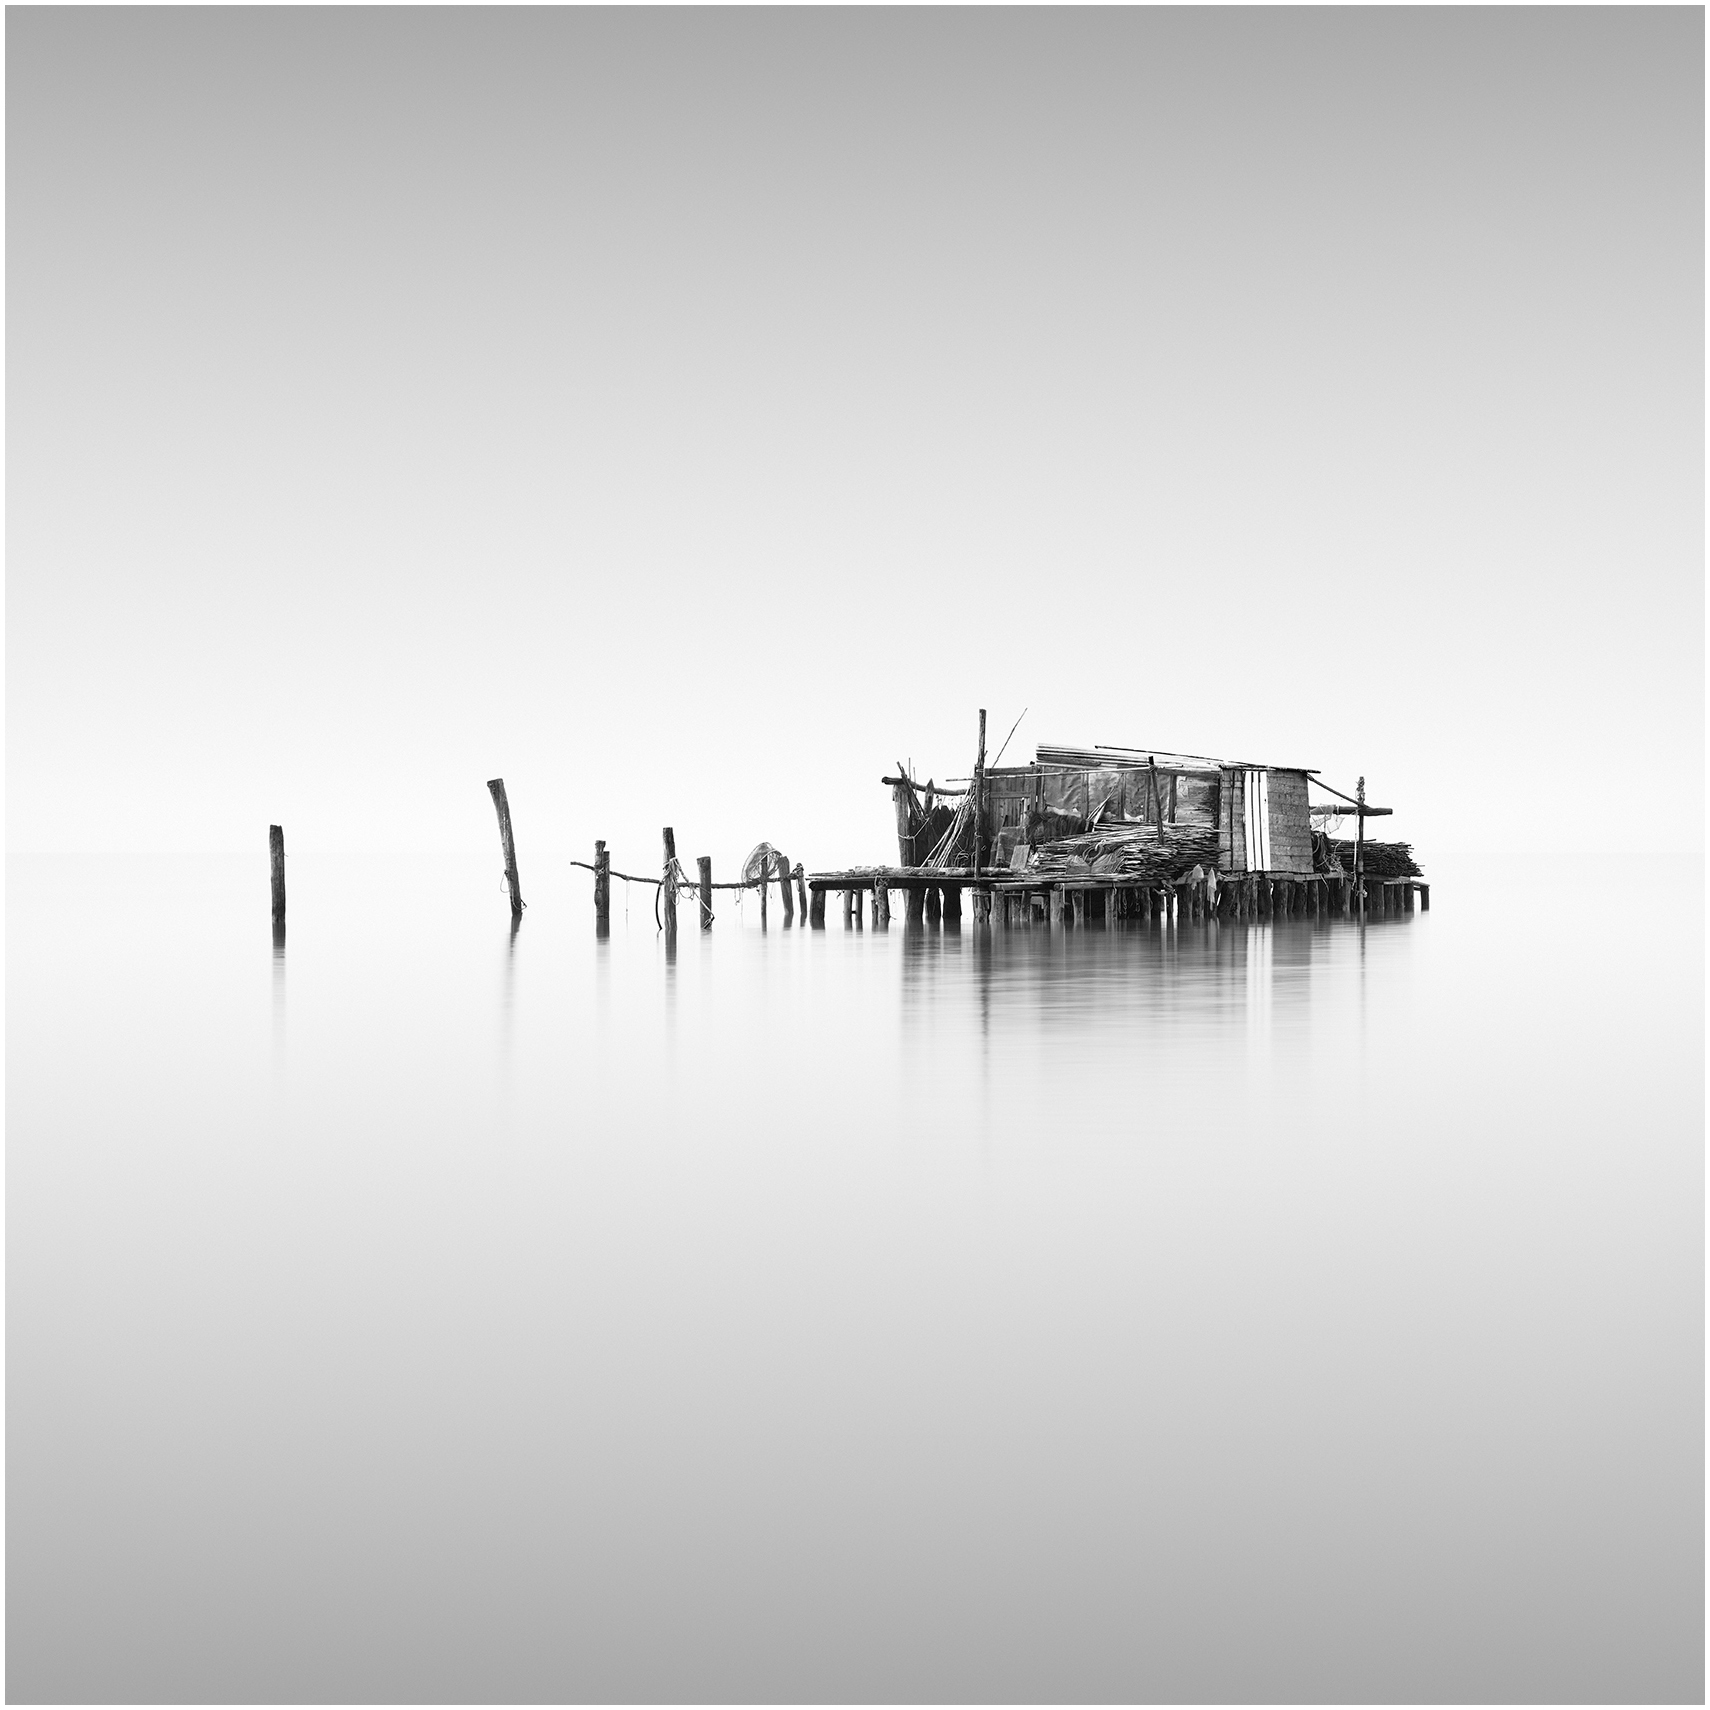 BARACCA - VENICE, ITALY, 2018   LIMITED EDITION OF: 50   framed price (AS SEEN IN THE EXHIBITION) *    £600   print only sizes and prices  35X35 - £195  53X53 - £325 (EXHIBITION SIZE)  70X70 - £425